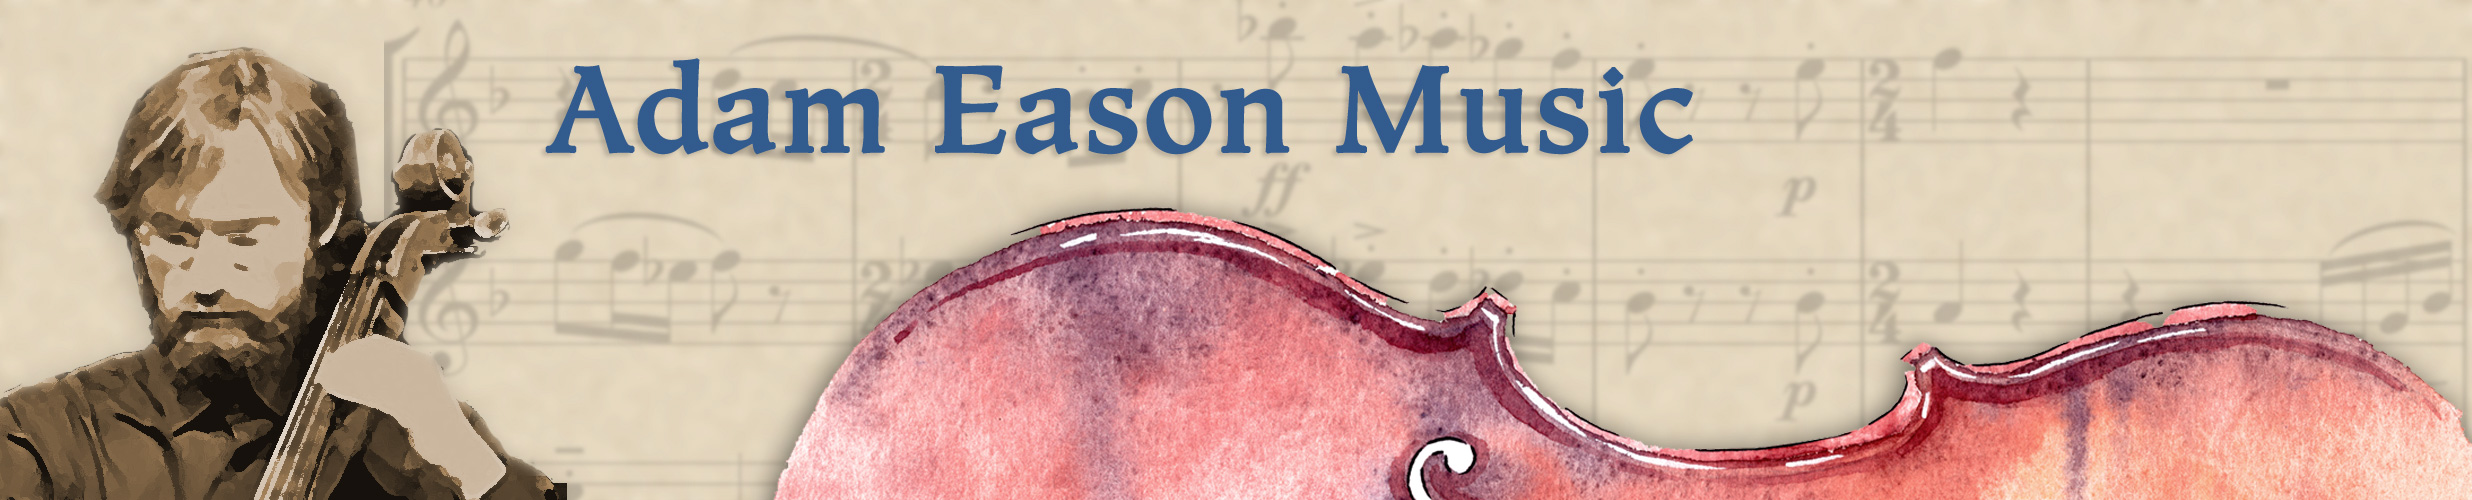 Adam Eason Music